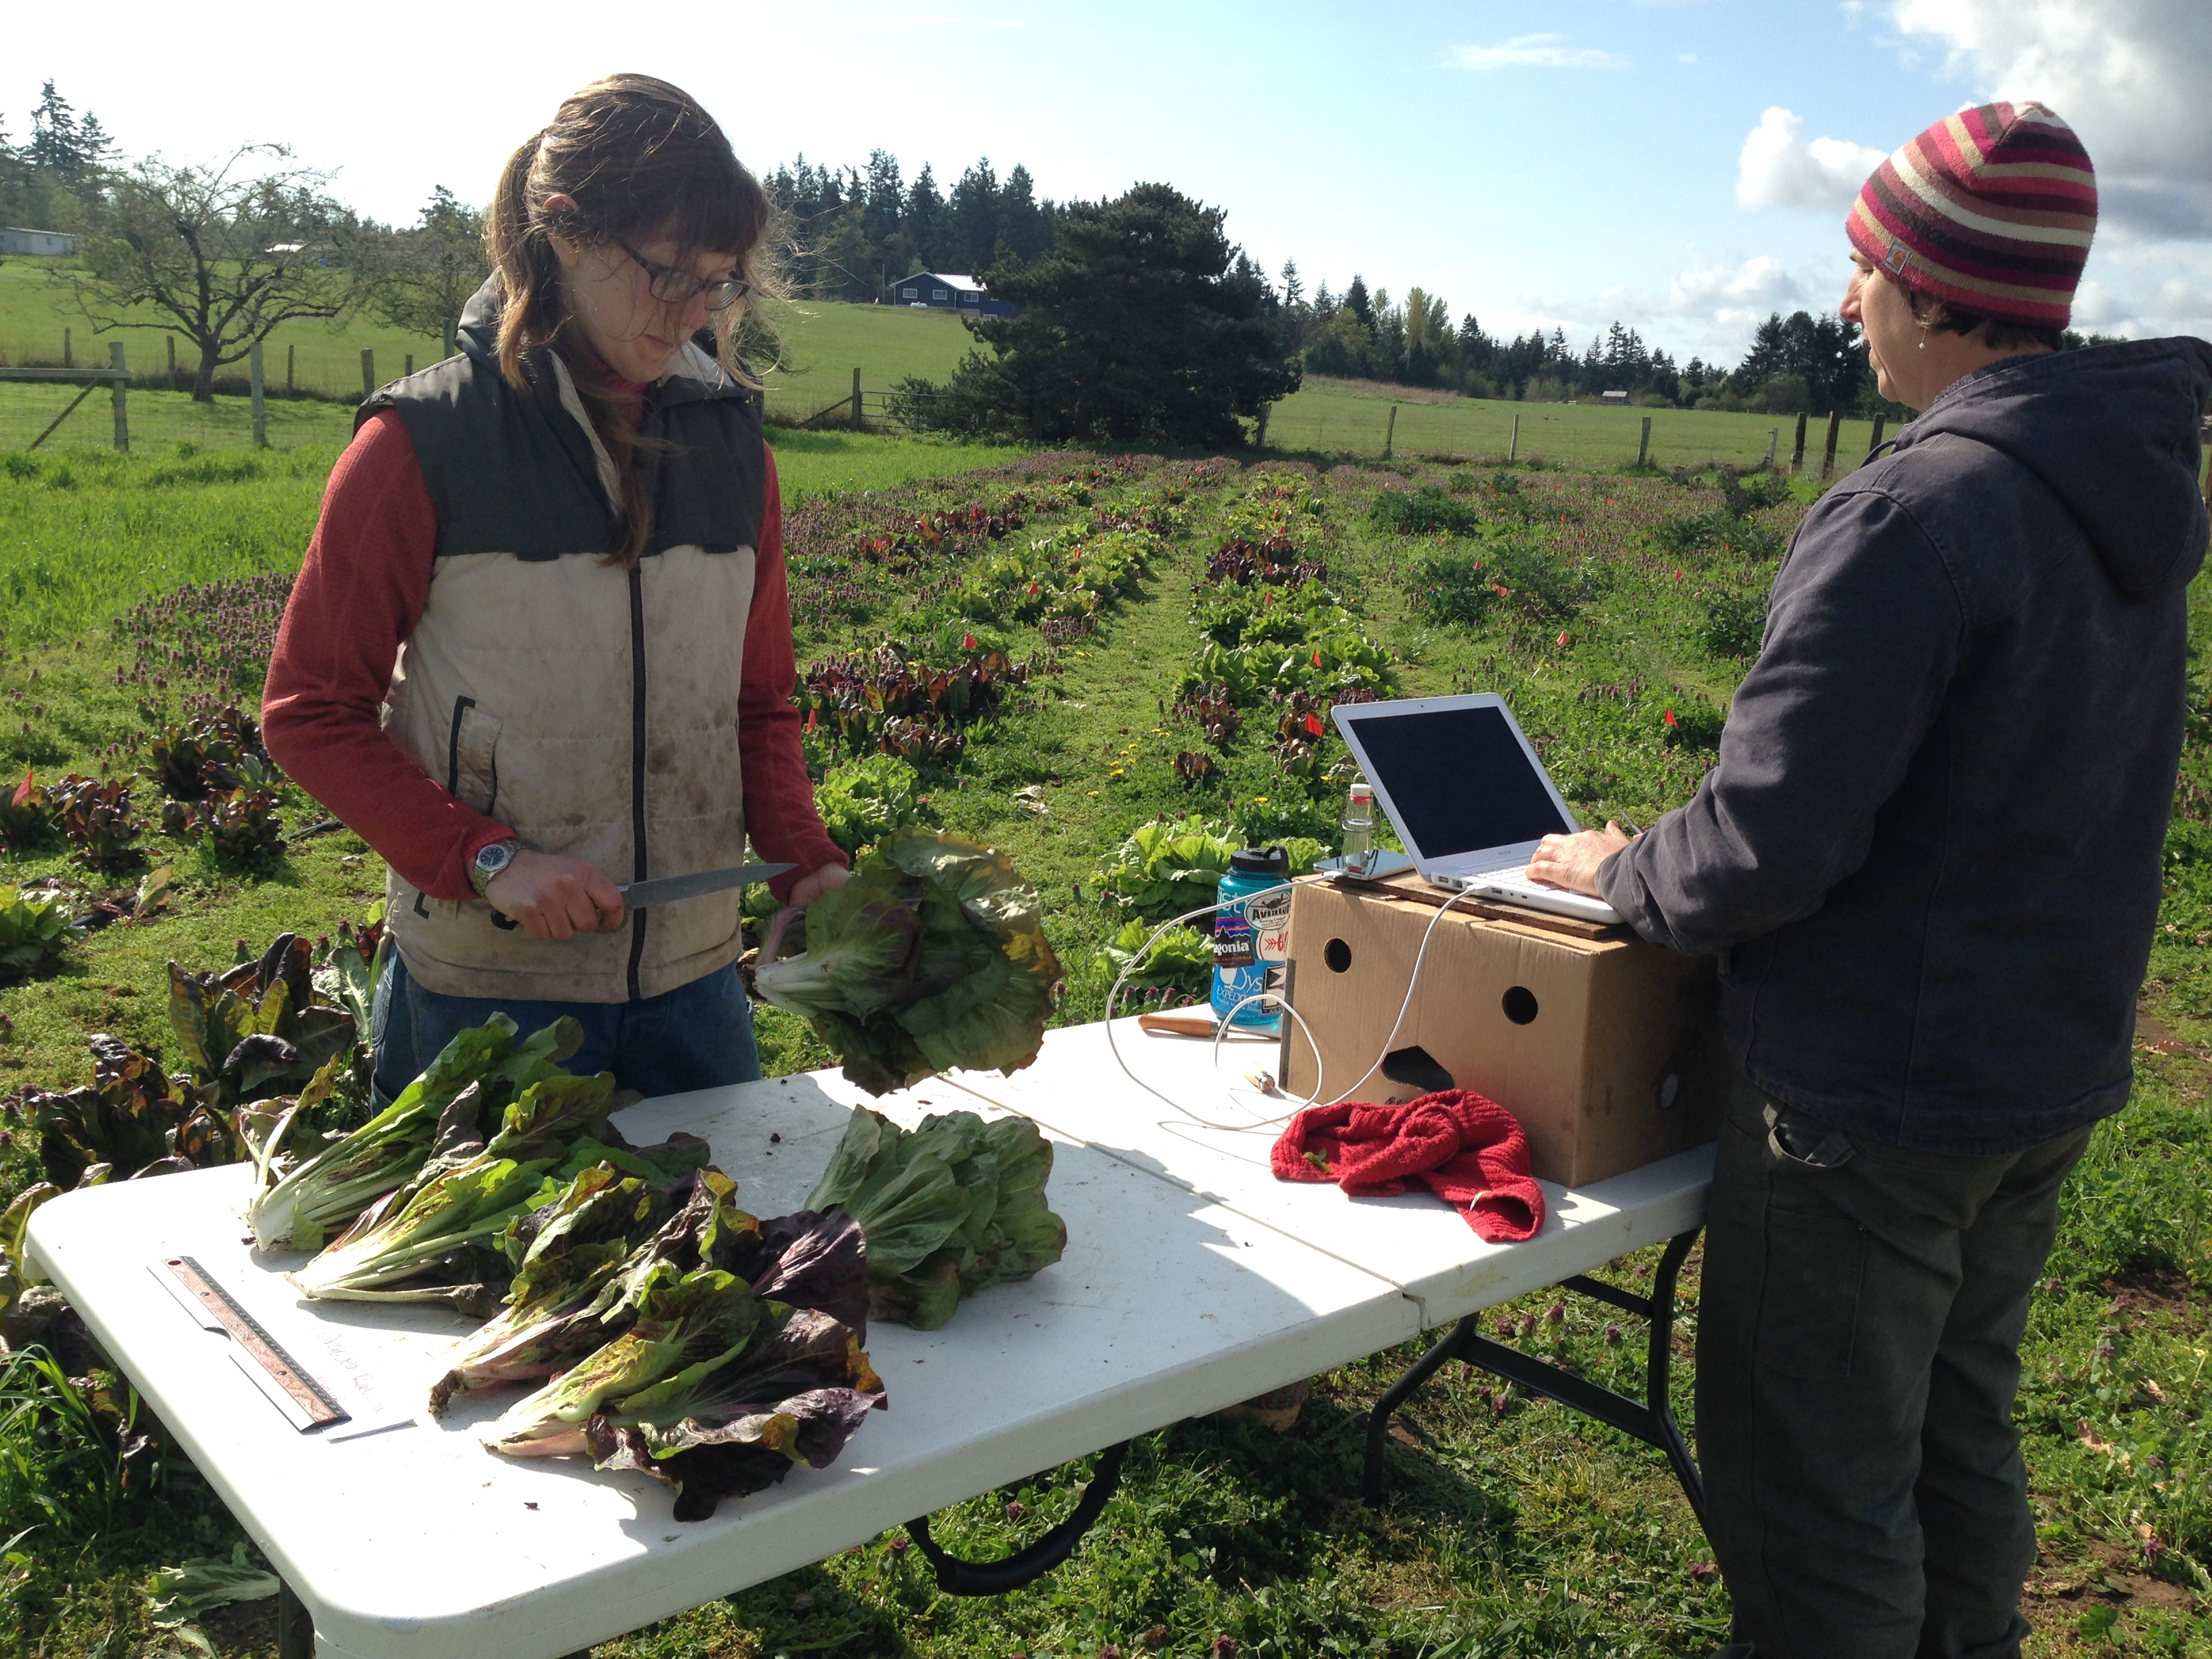 Vegetable trial evaluators at work at a Washington State University Extension experimental farm on Marrowstone Island, Wash. (Photo: Courtesy of Micaela Colley, Organic Seed Alliance)